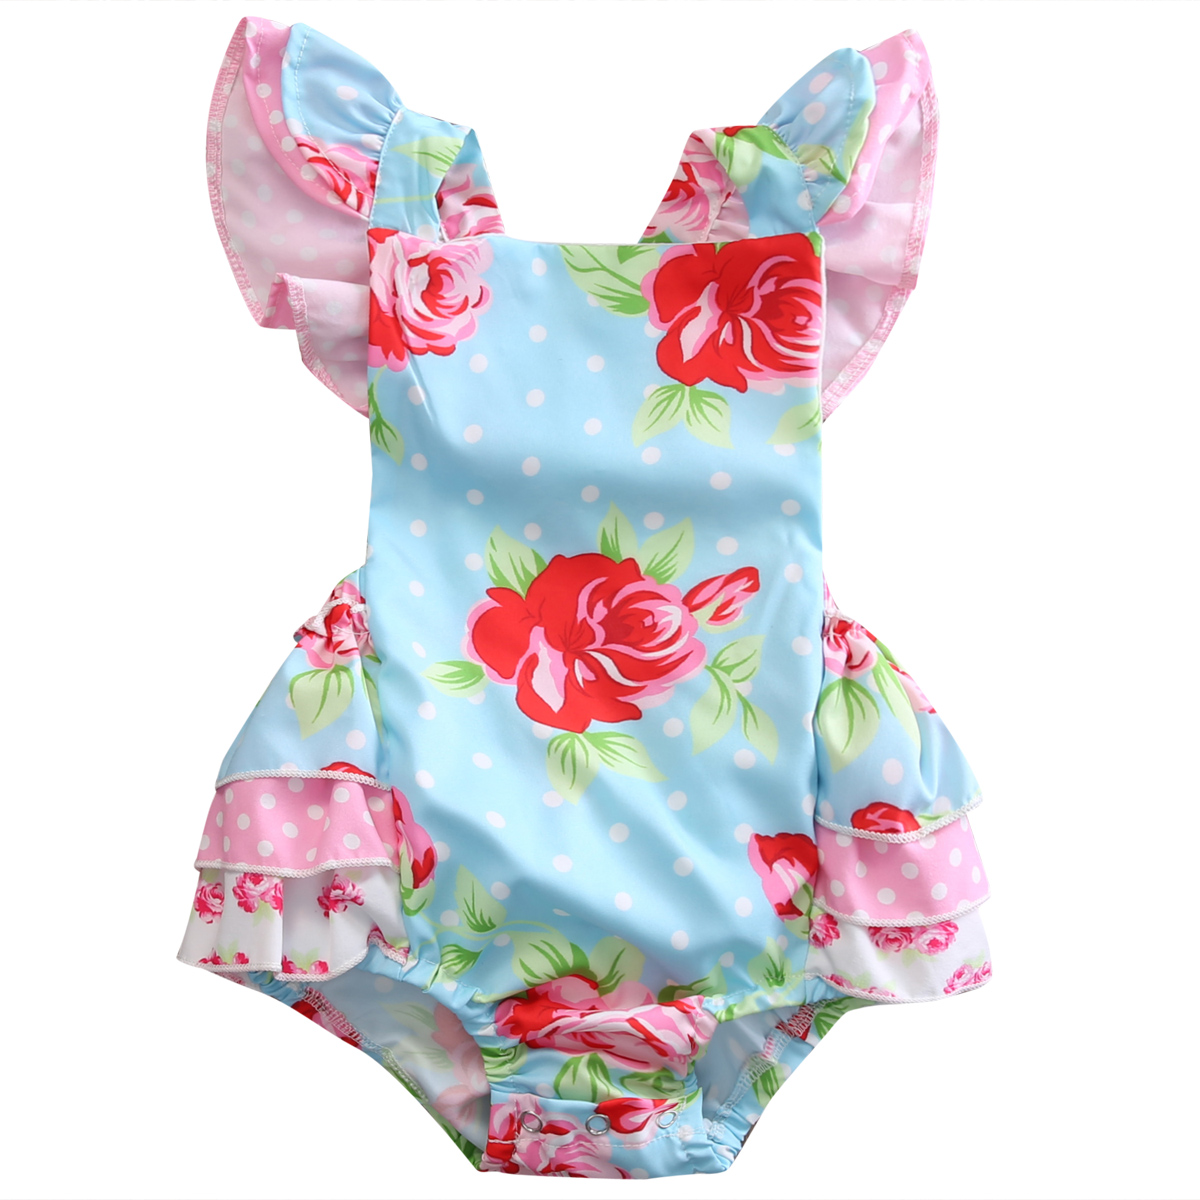 Newborn Baby Girls Romper Cotton Clothes Floral Ruffle Sunsuit Jumpsuit Kids girl rompers